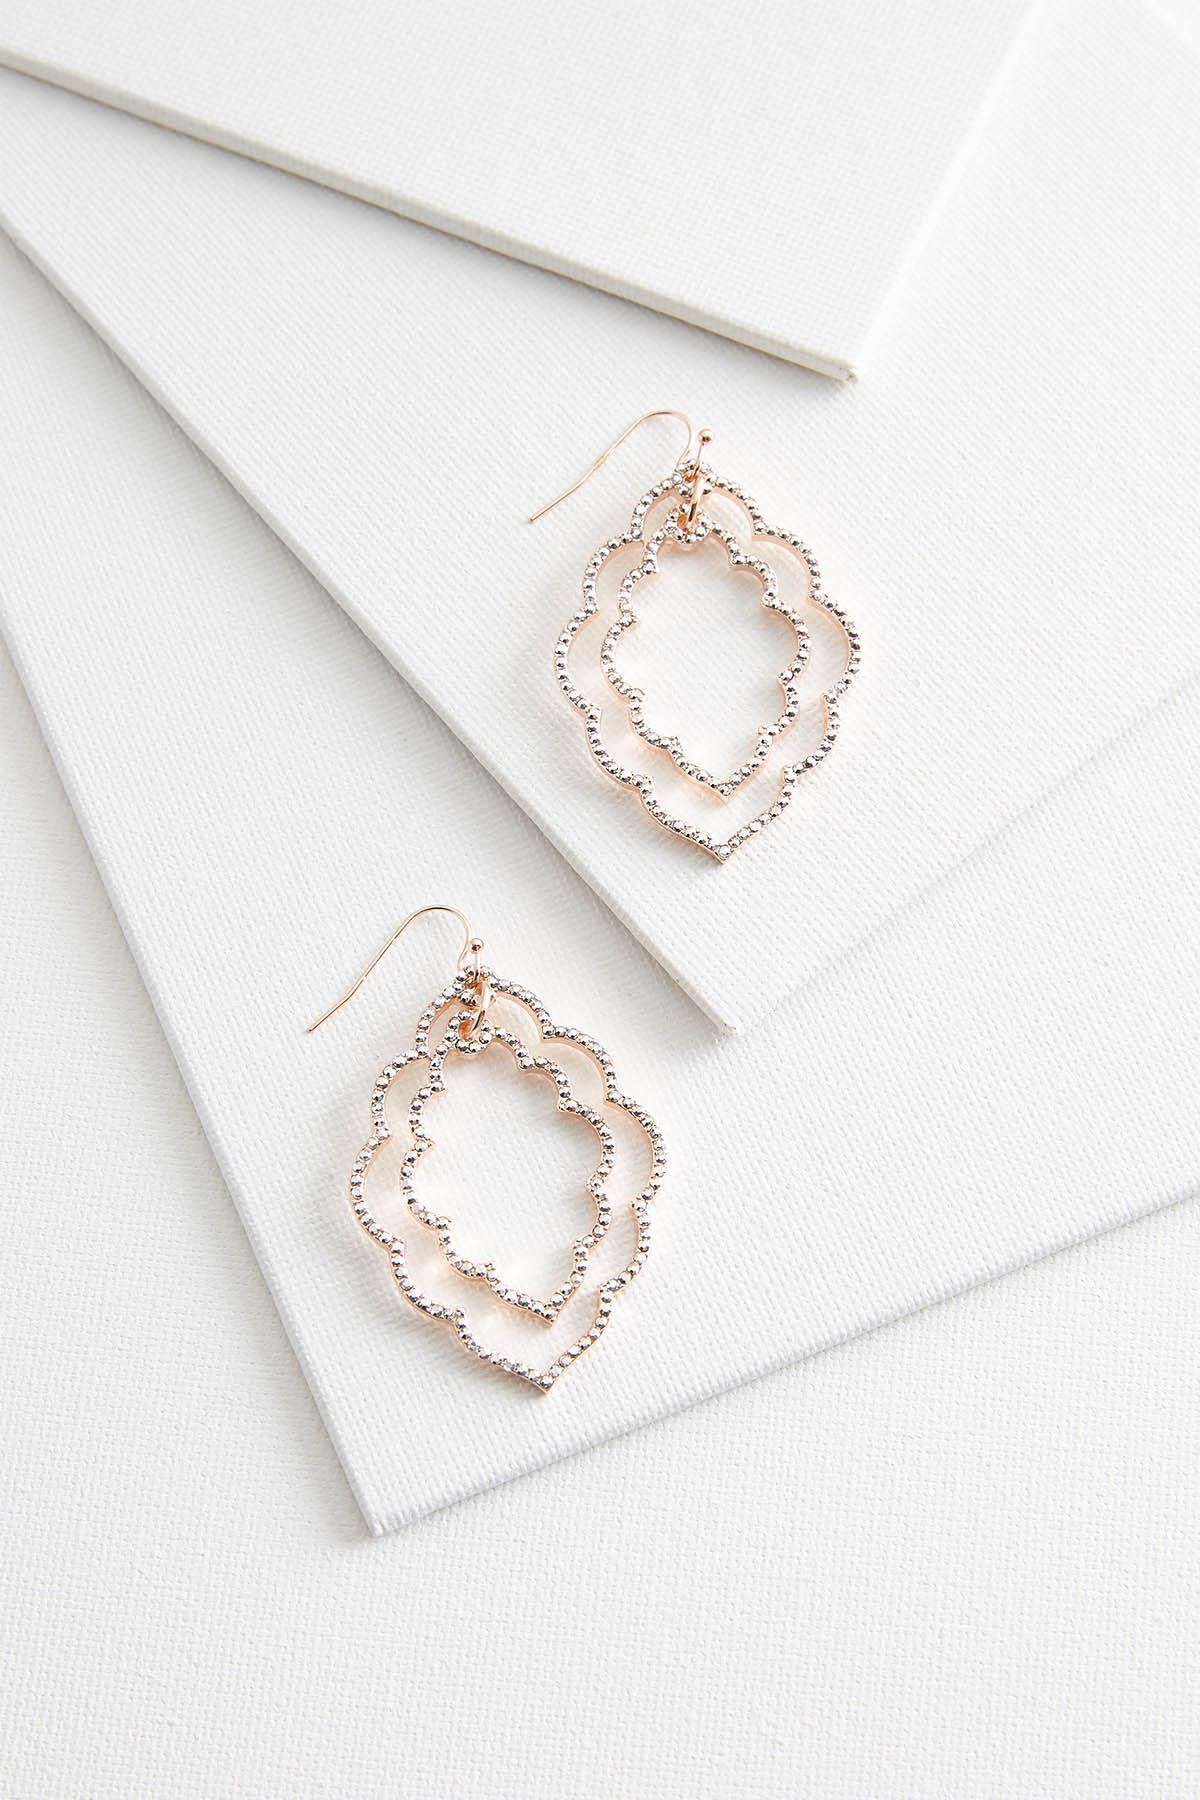 Sparkling Scalloped Earrings